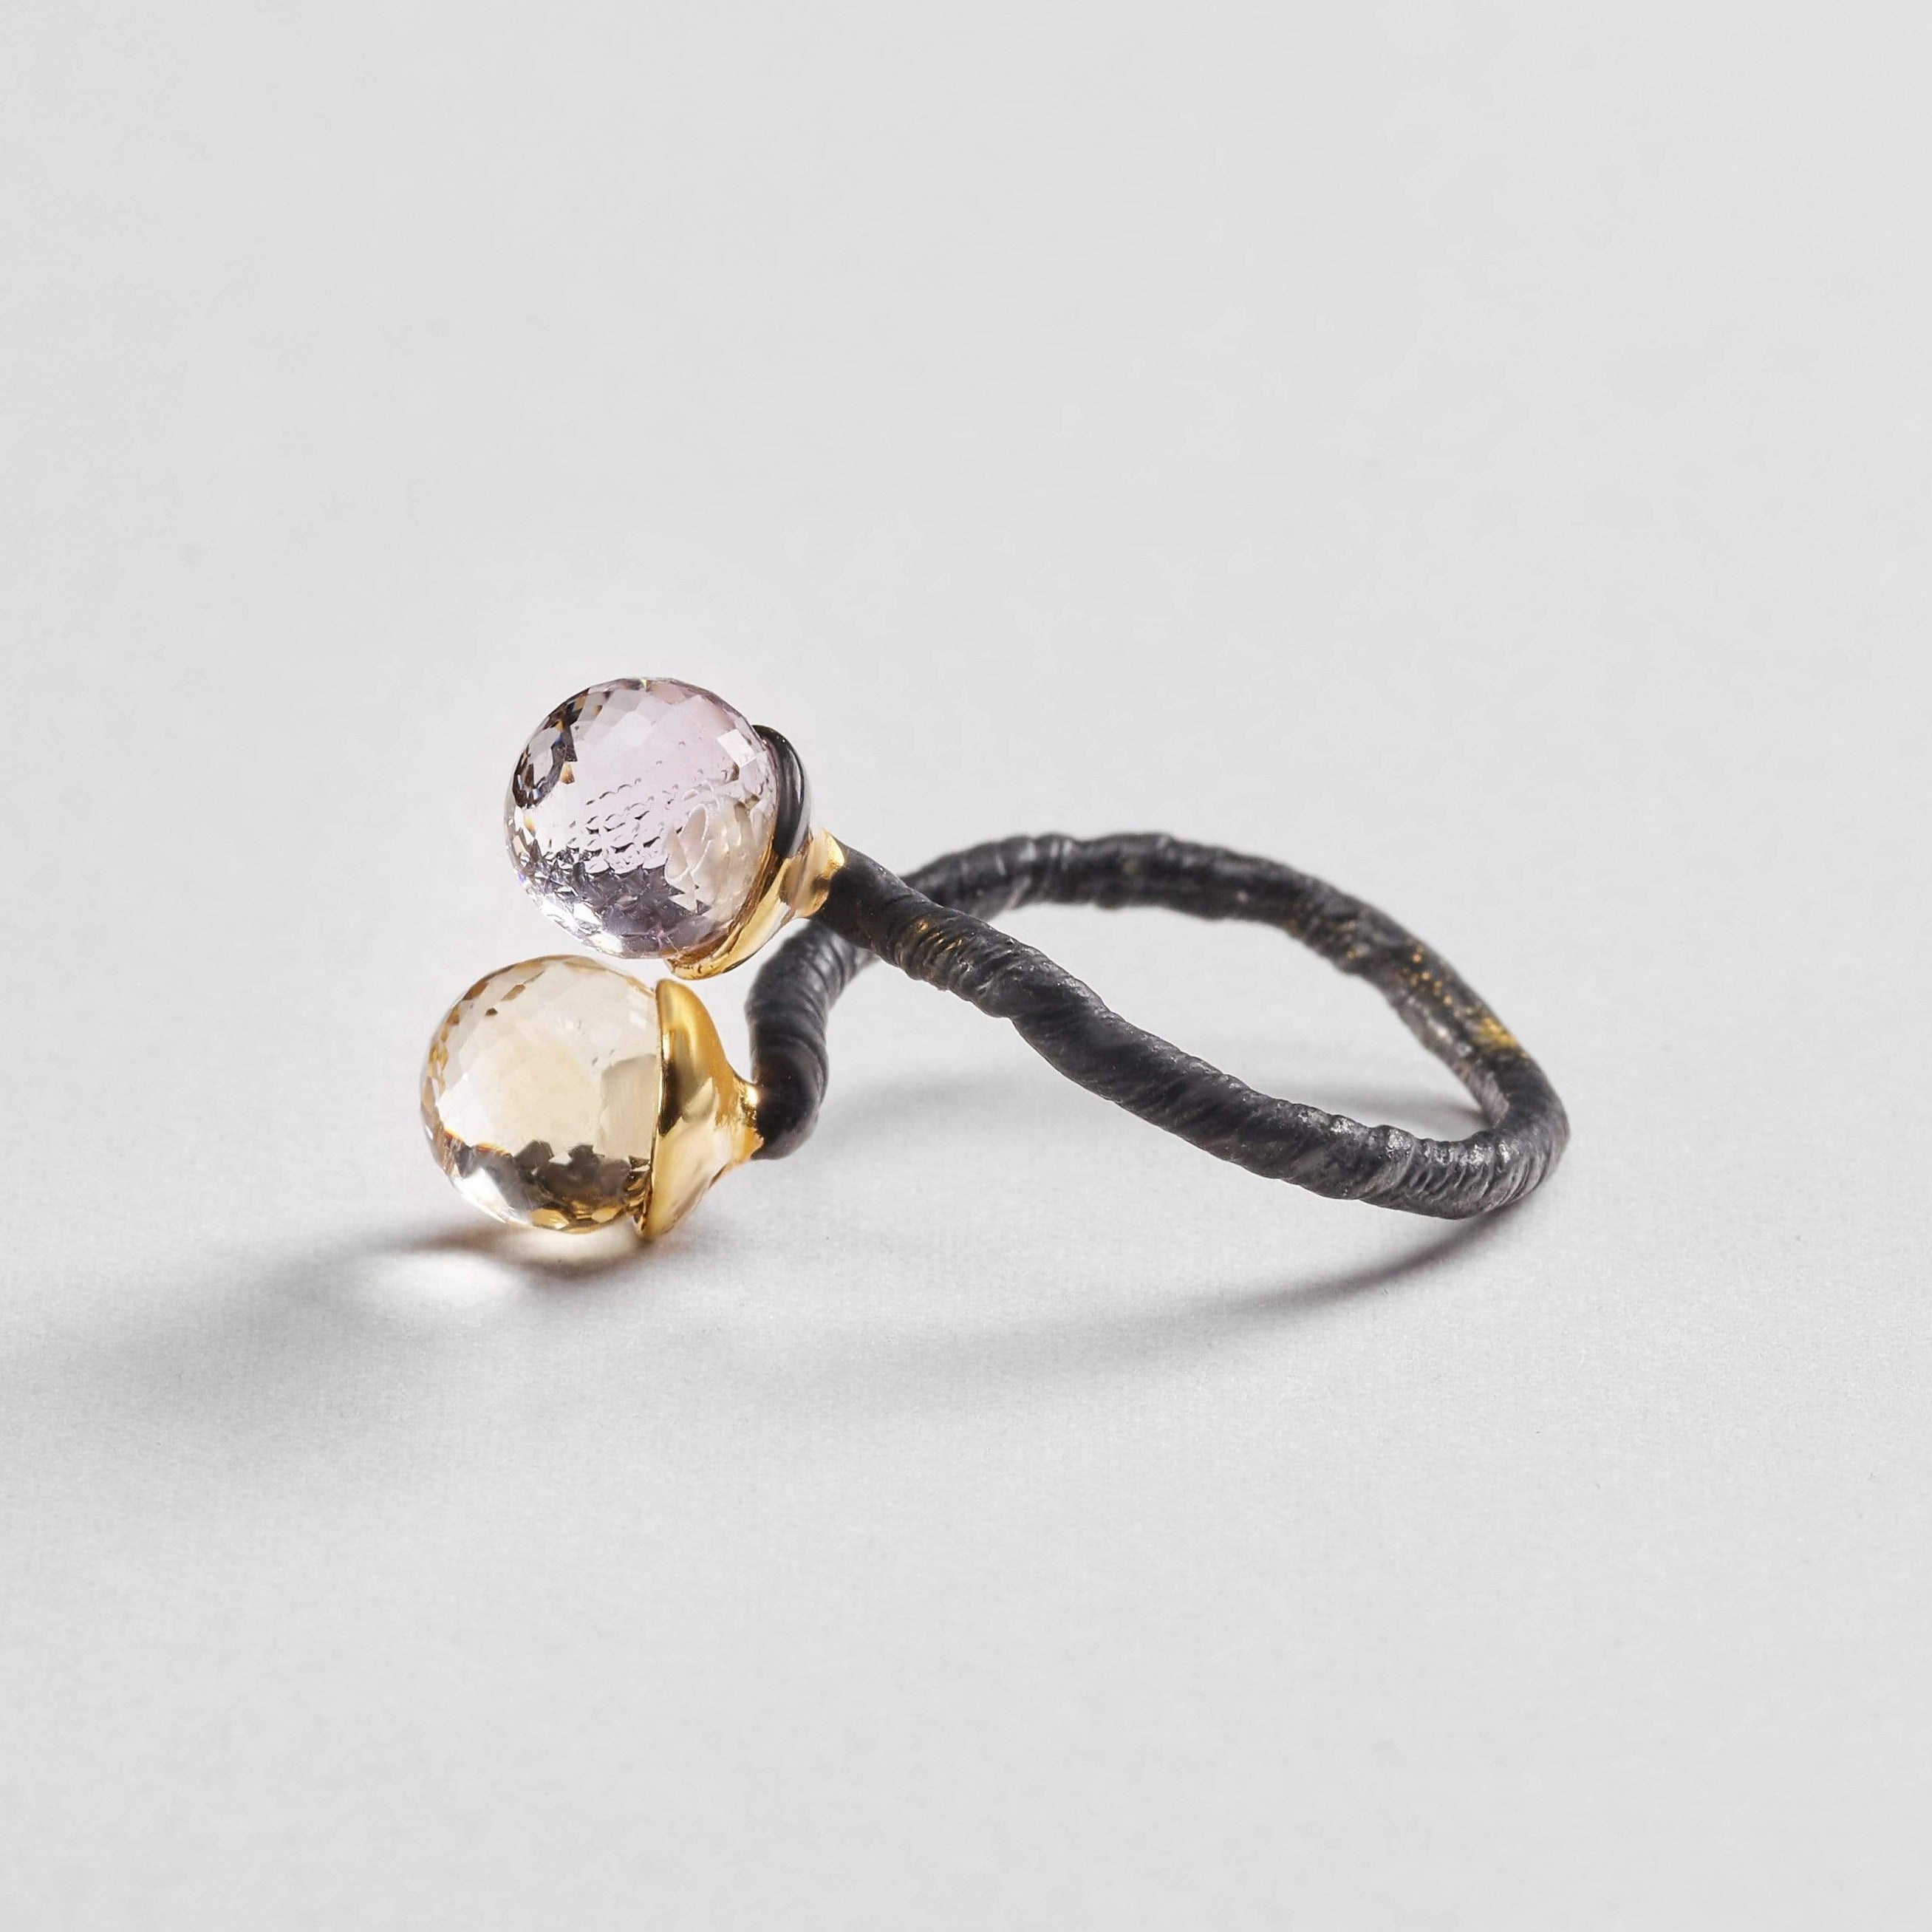 Leda Ring, Amethyst, Anthracite, black, Citrine, Gold, Serial, spo-disabled, StoneColor:MixedColor Ring